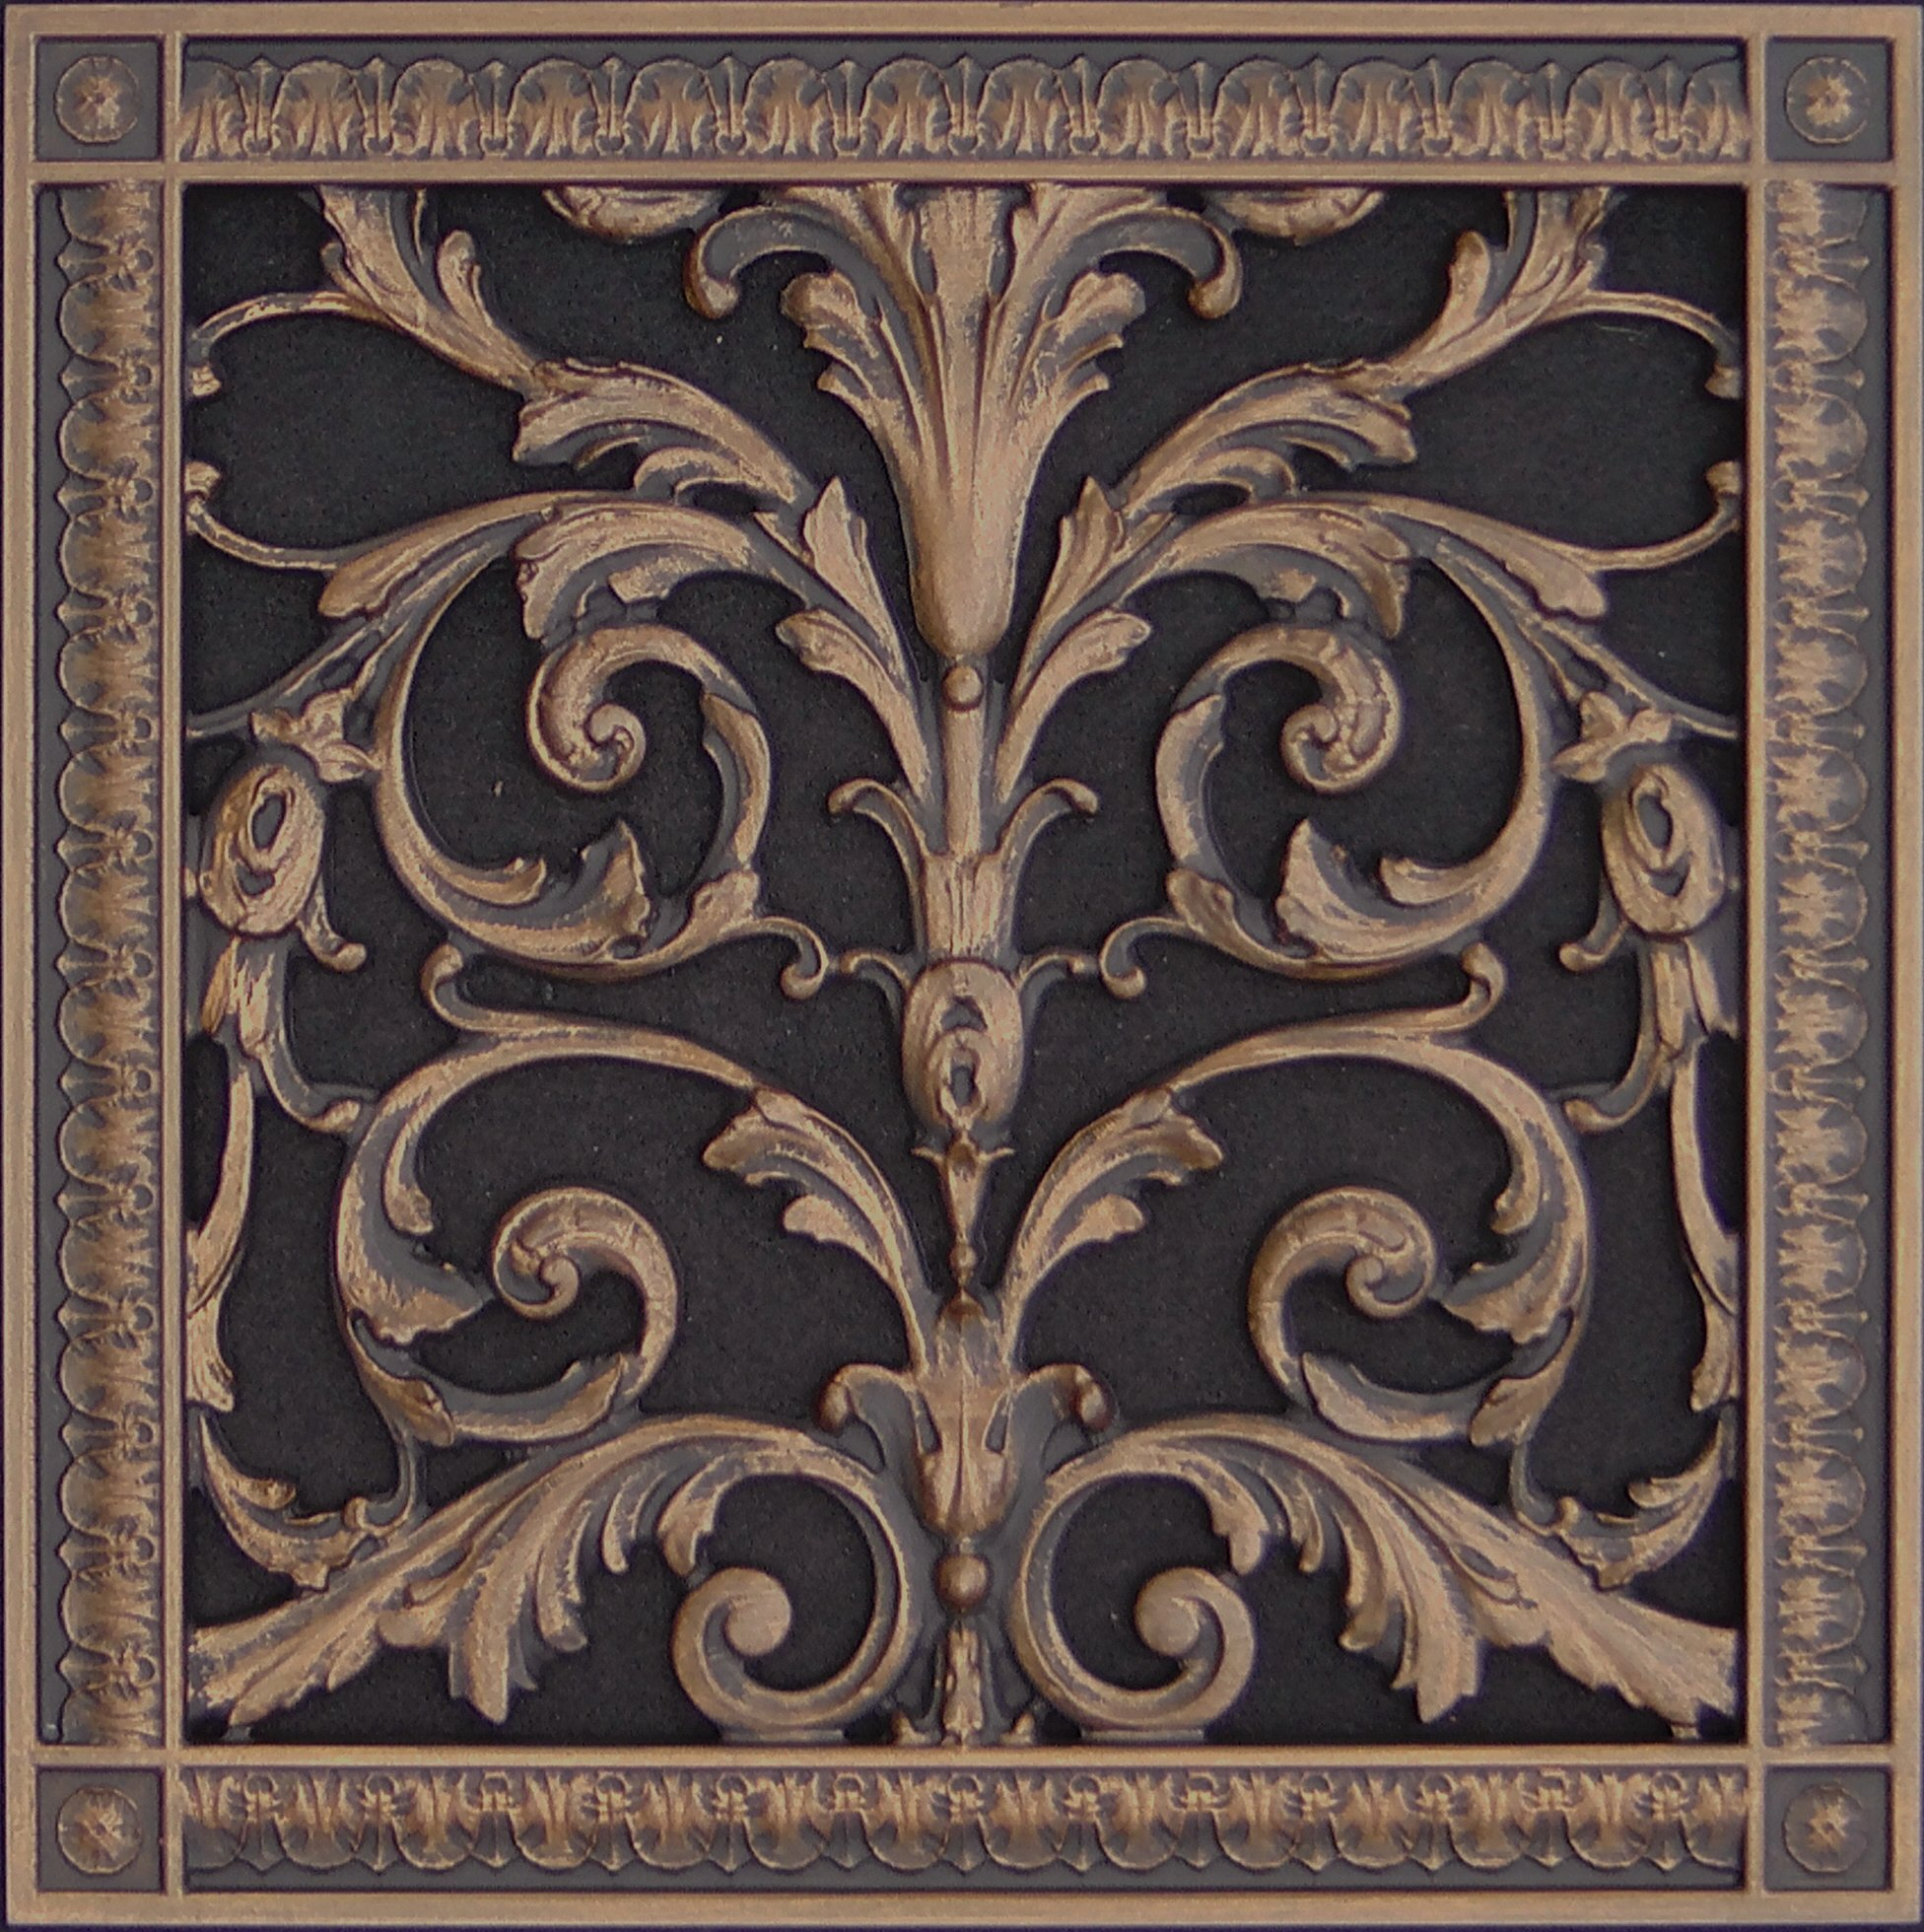 "Decorative Vent Cover, Grille, made of Urethane Resin in Louis XIV, French style fits over a 12"" x 12"", Total size, 14"" by 14"", for wall & ceiling installation only. (not for floors) (Rubbed Bronze) by Beaux-Artes, Ltd."